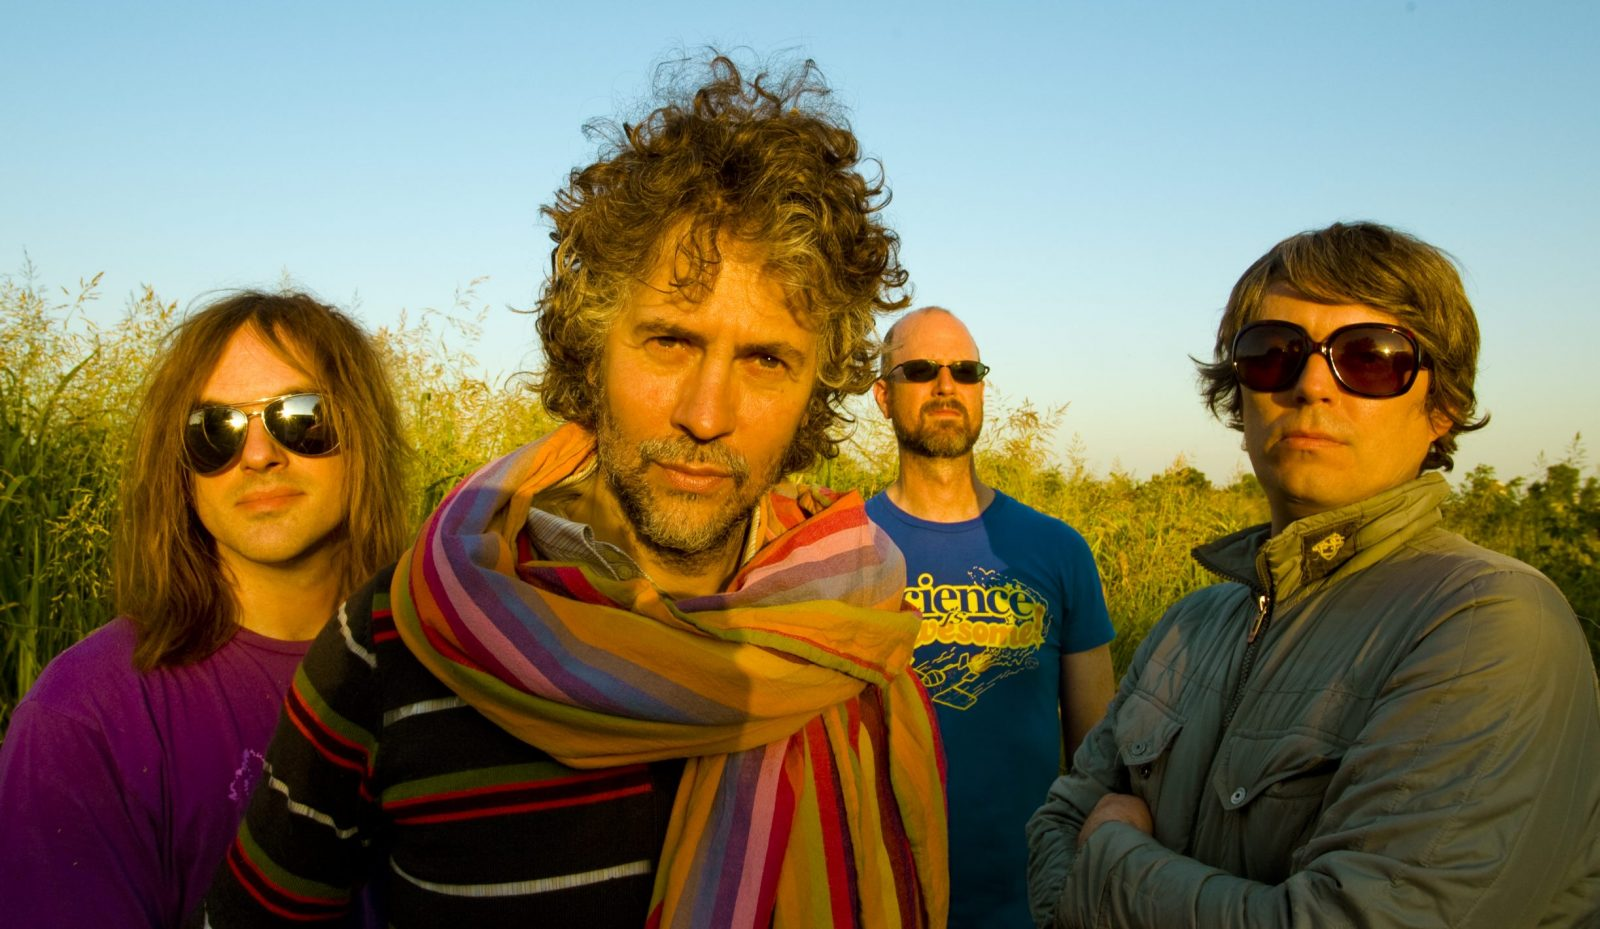 The music of the Flaming Lips helped Jeff Miers get through a recent illness.